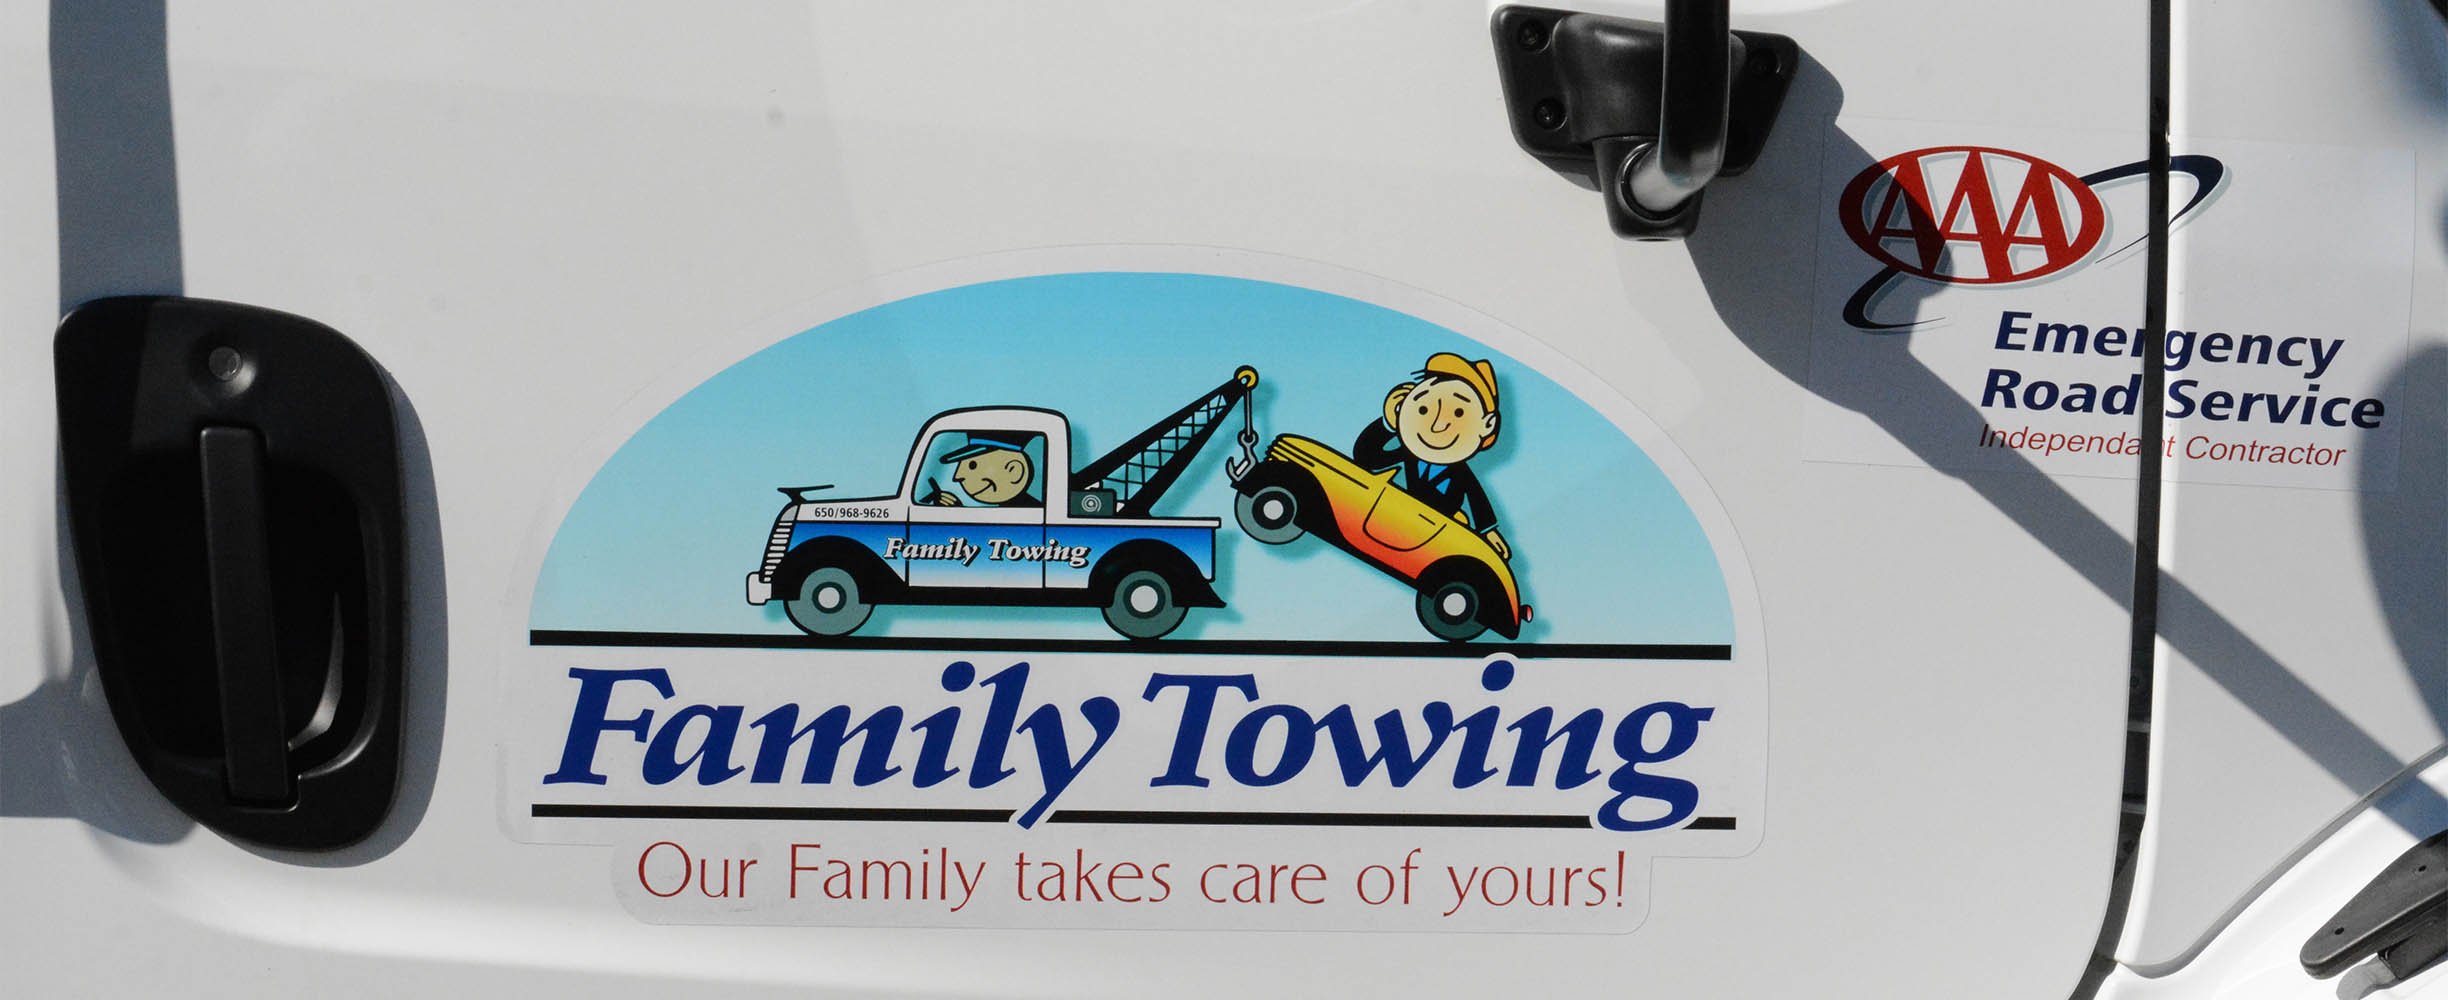 Towing | Mountain view | Towing Services | Towing Truck